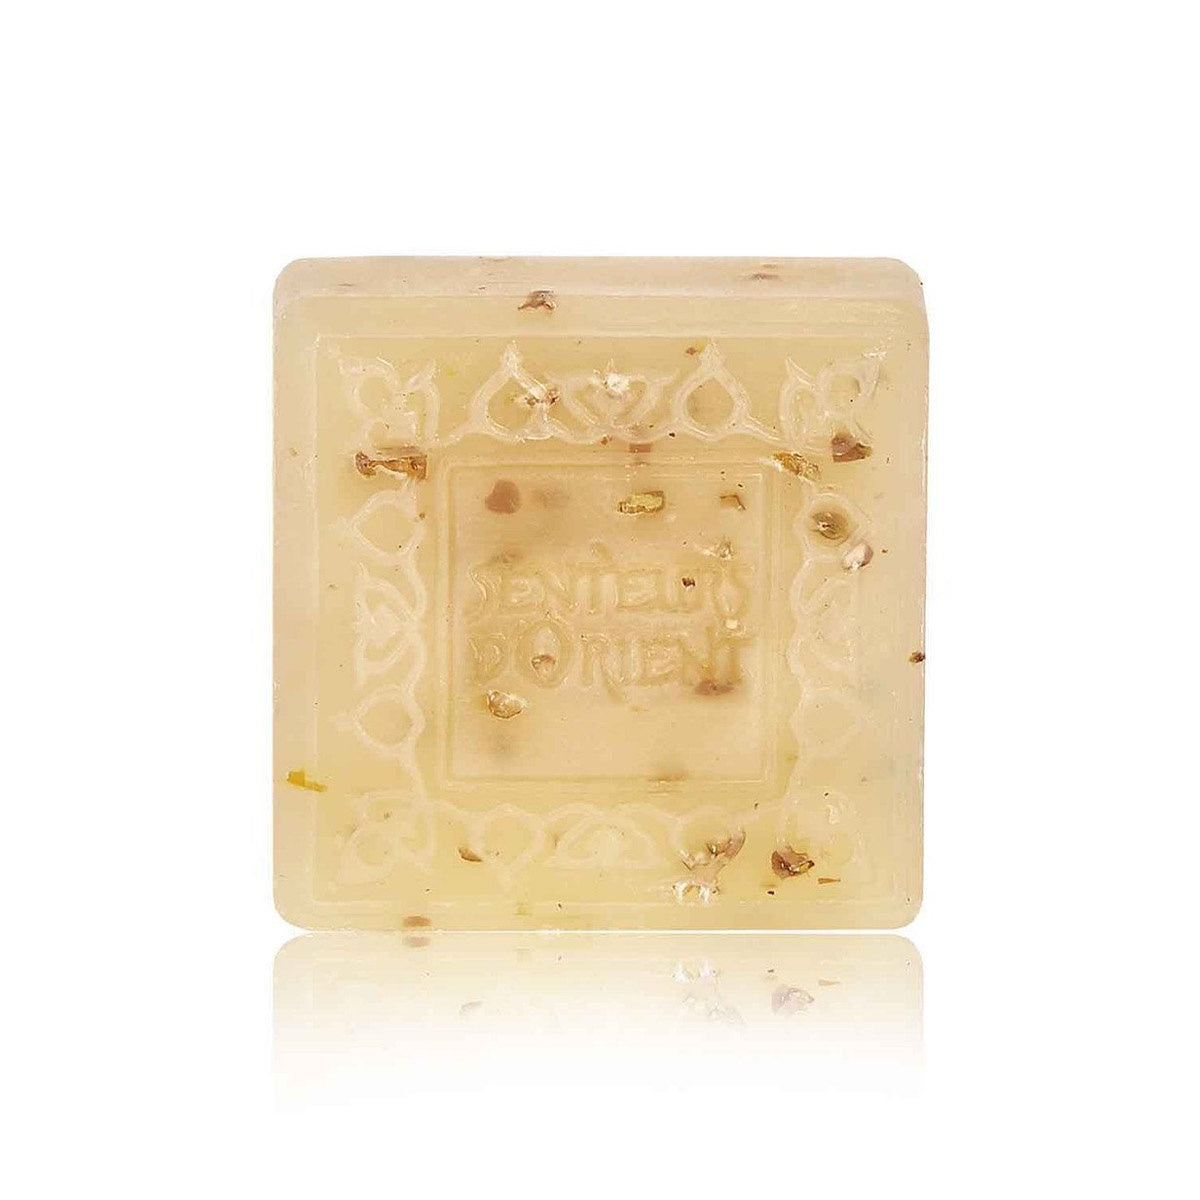 Ma'amoul Soap - Almond Exfoliant